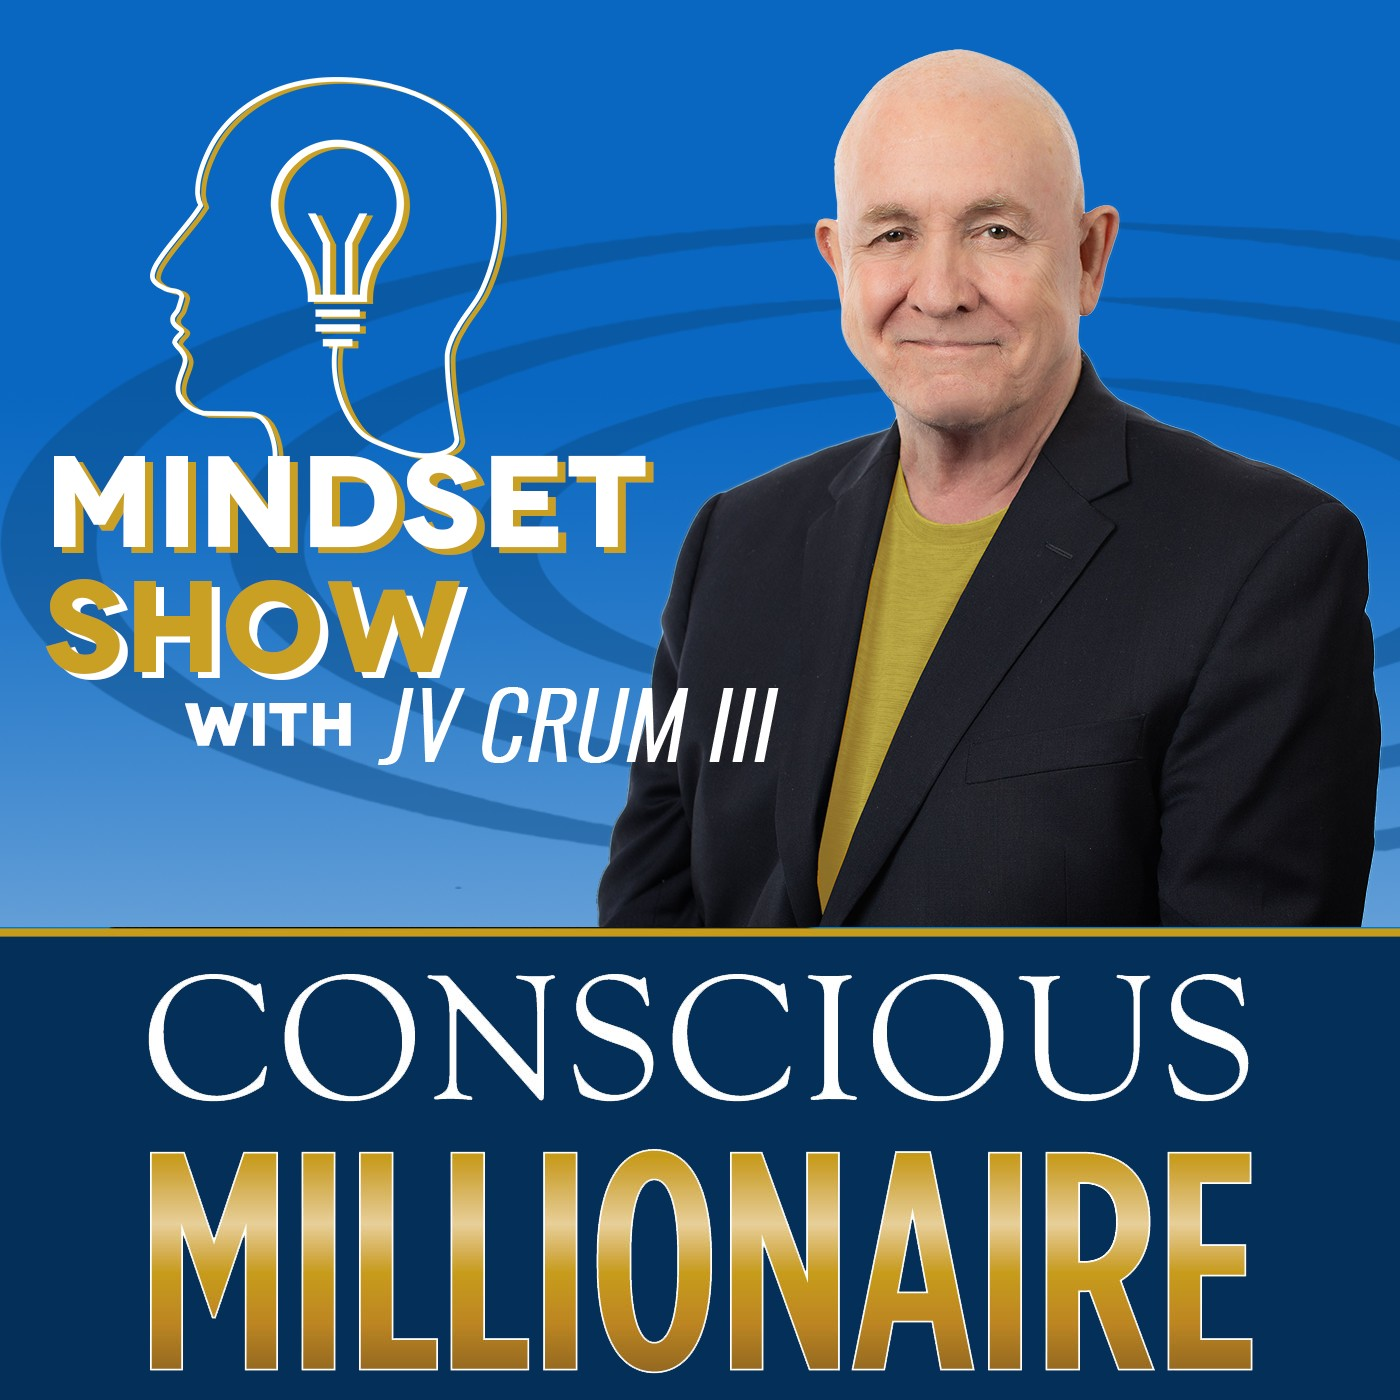 203: Best of Conscious Millionaire Mindset: The 3 Drivers of Success!